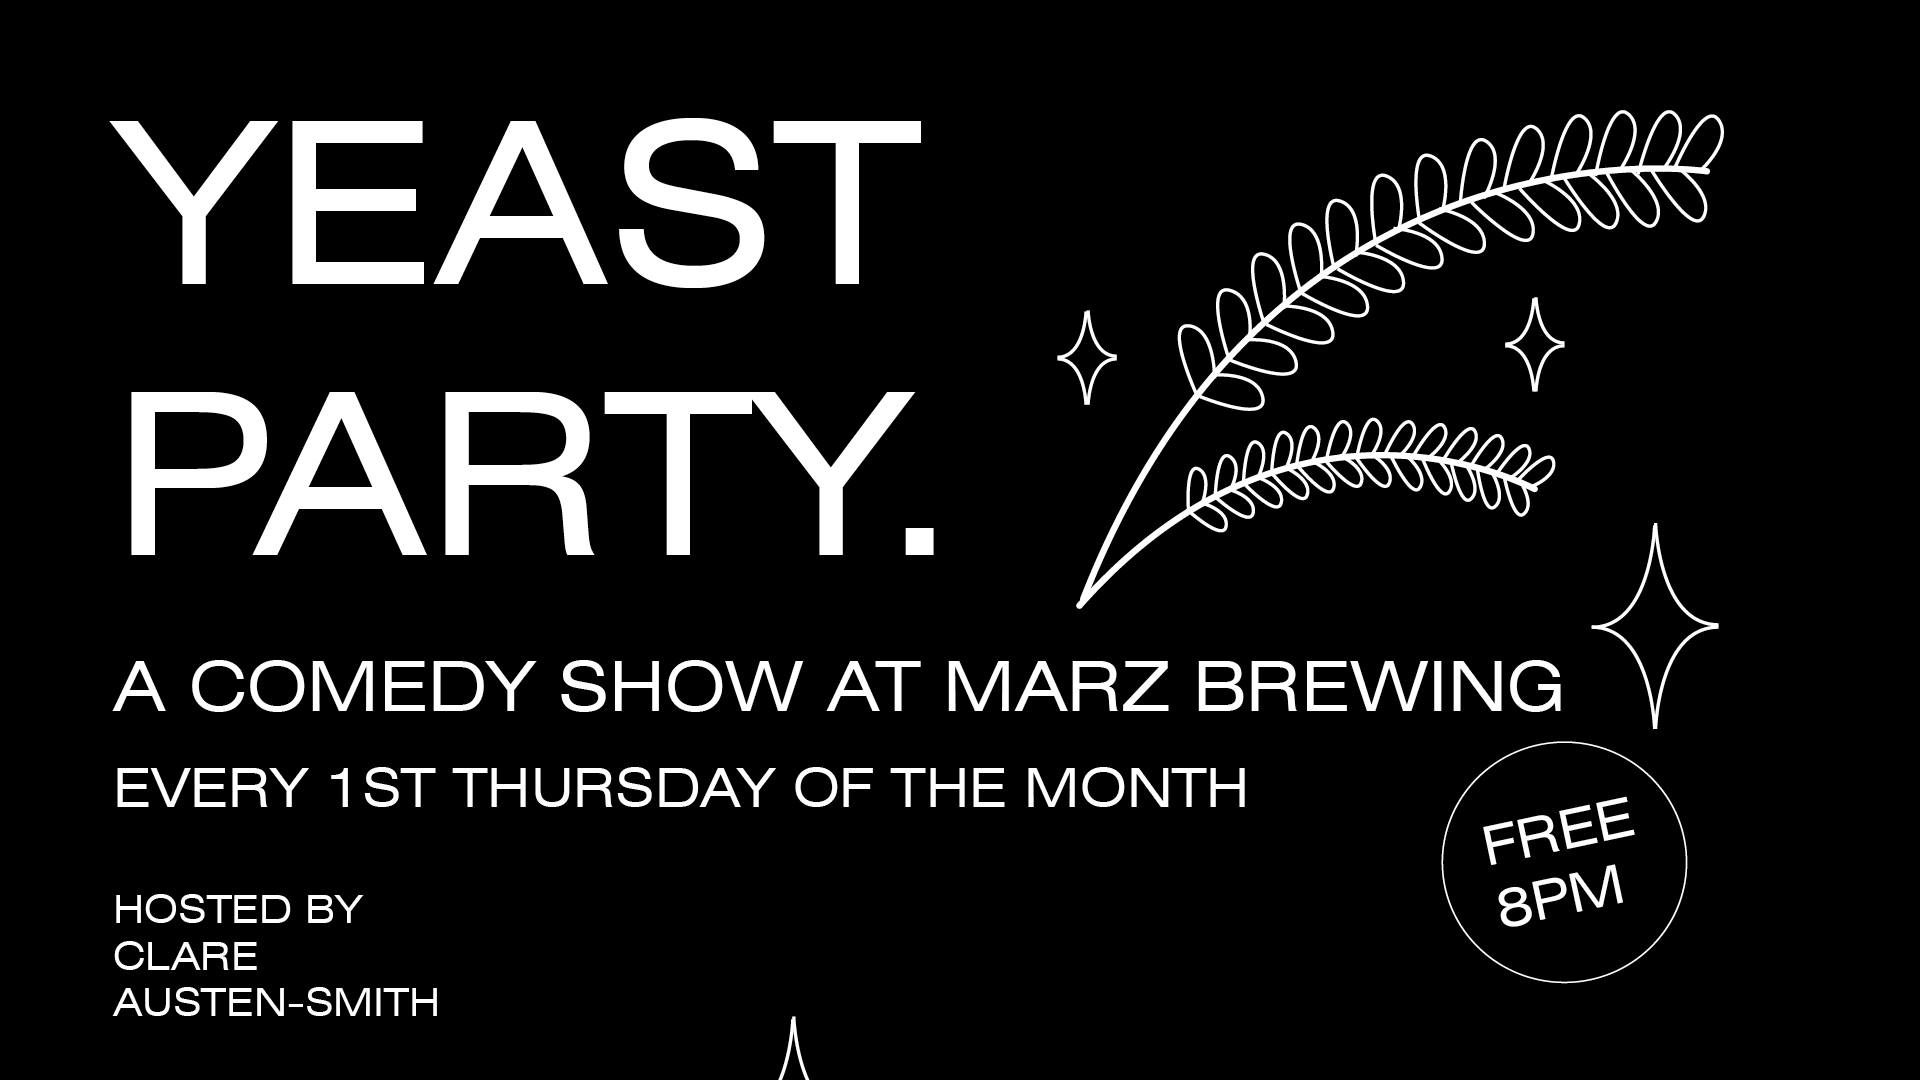 Yeast Party Comedy Night poster 201904